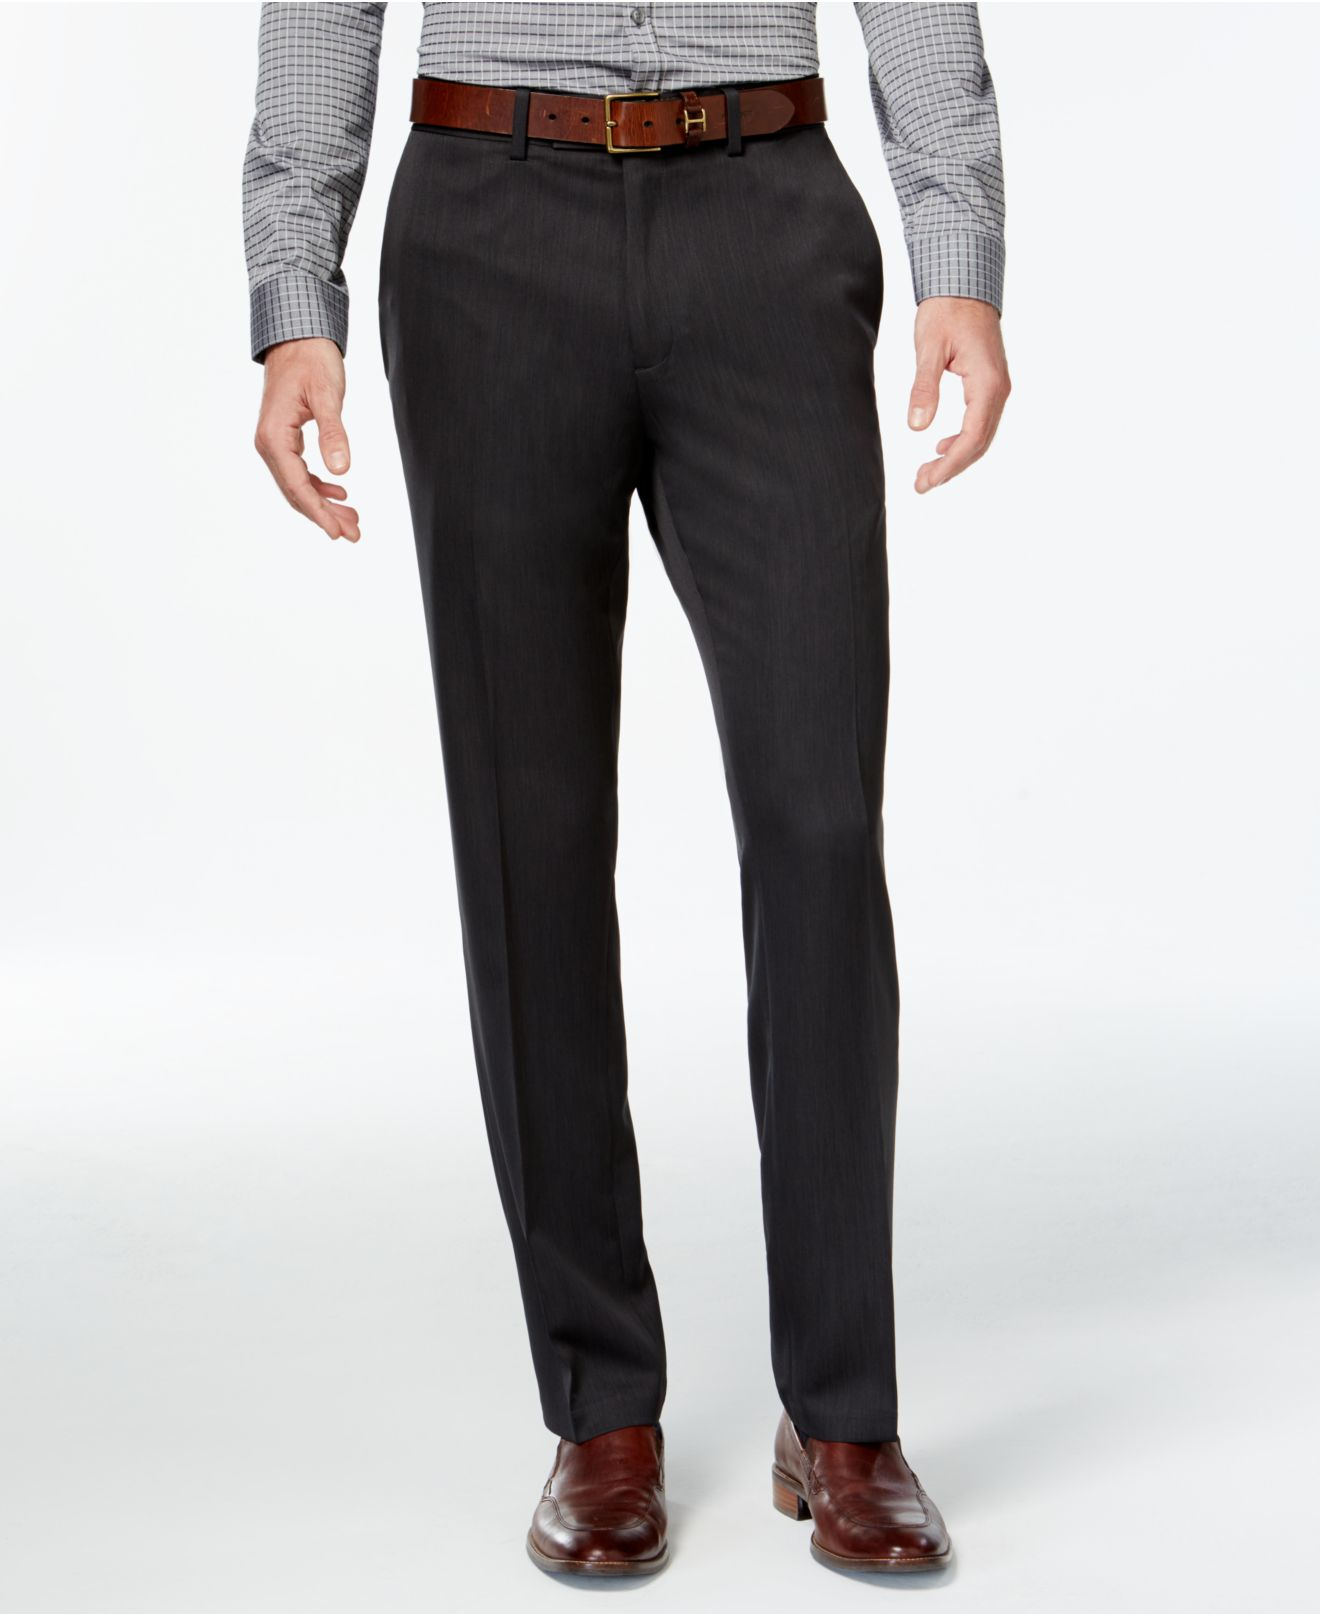 Costumes & Dress Up. Men's Slim Fit Pants. Showing 48 of results that match your query. Search Product Result. Product - Winsellers Men's Leggings Quick Dry Compression Trousers Bodybuilding Fitness Pants Slim Fit Skinny For Men Clearance. Clearance. Product Image. Price $ 45 - $ Product Title.